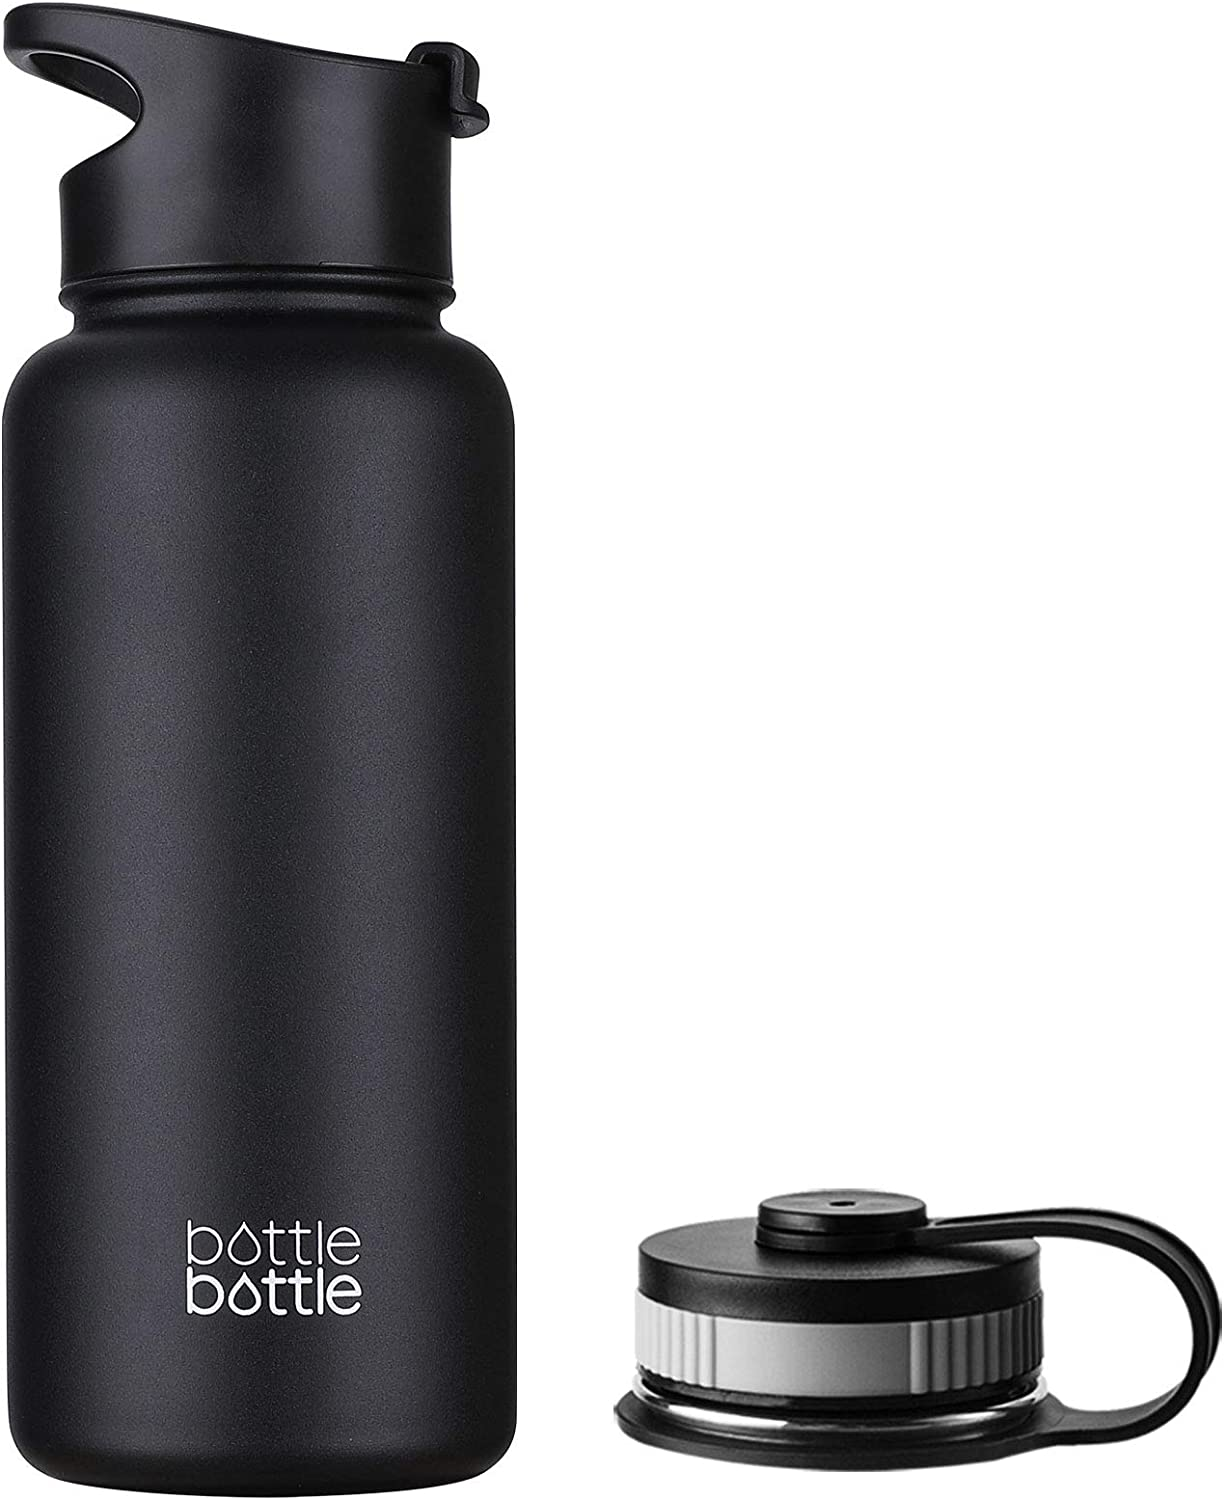 Bottlebottle 32 Oz Insulated Stainless Steel Water Bottle With Bonus Lid Double Wall Vacuum Sealed Flask Wide Mouth Bpa Free Cold 24 Hrs Hot 12 Hrs Night Black Amazon Ca Home Kitchen